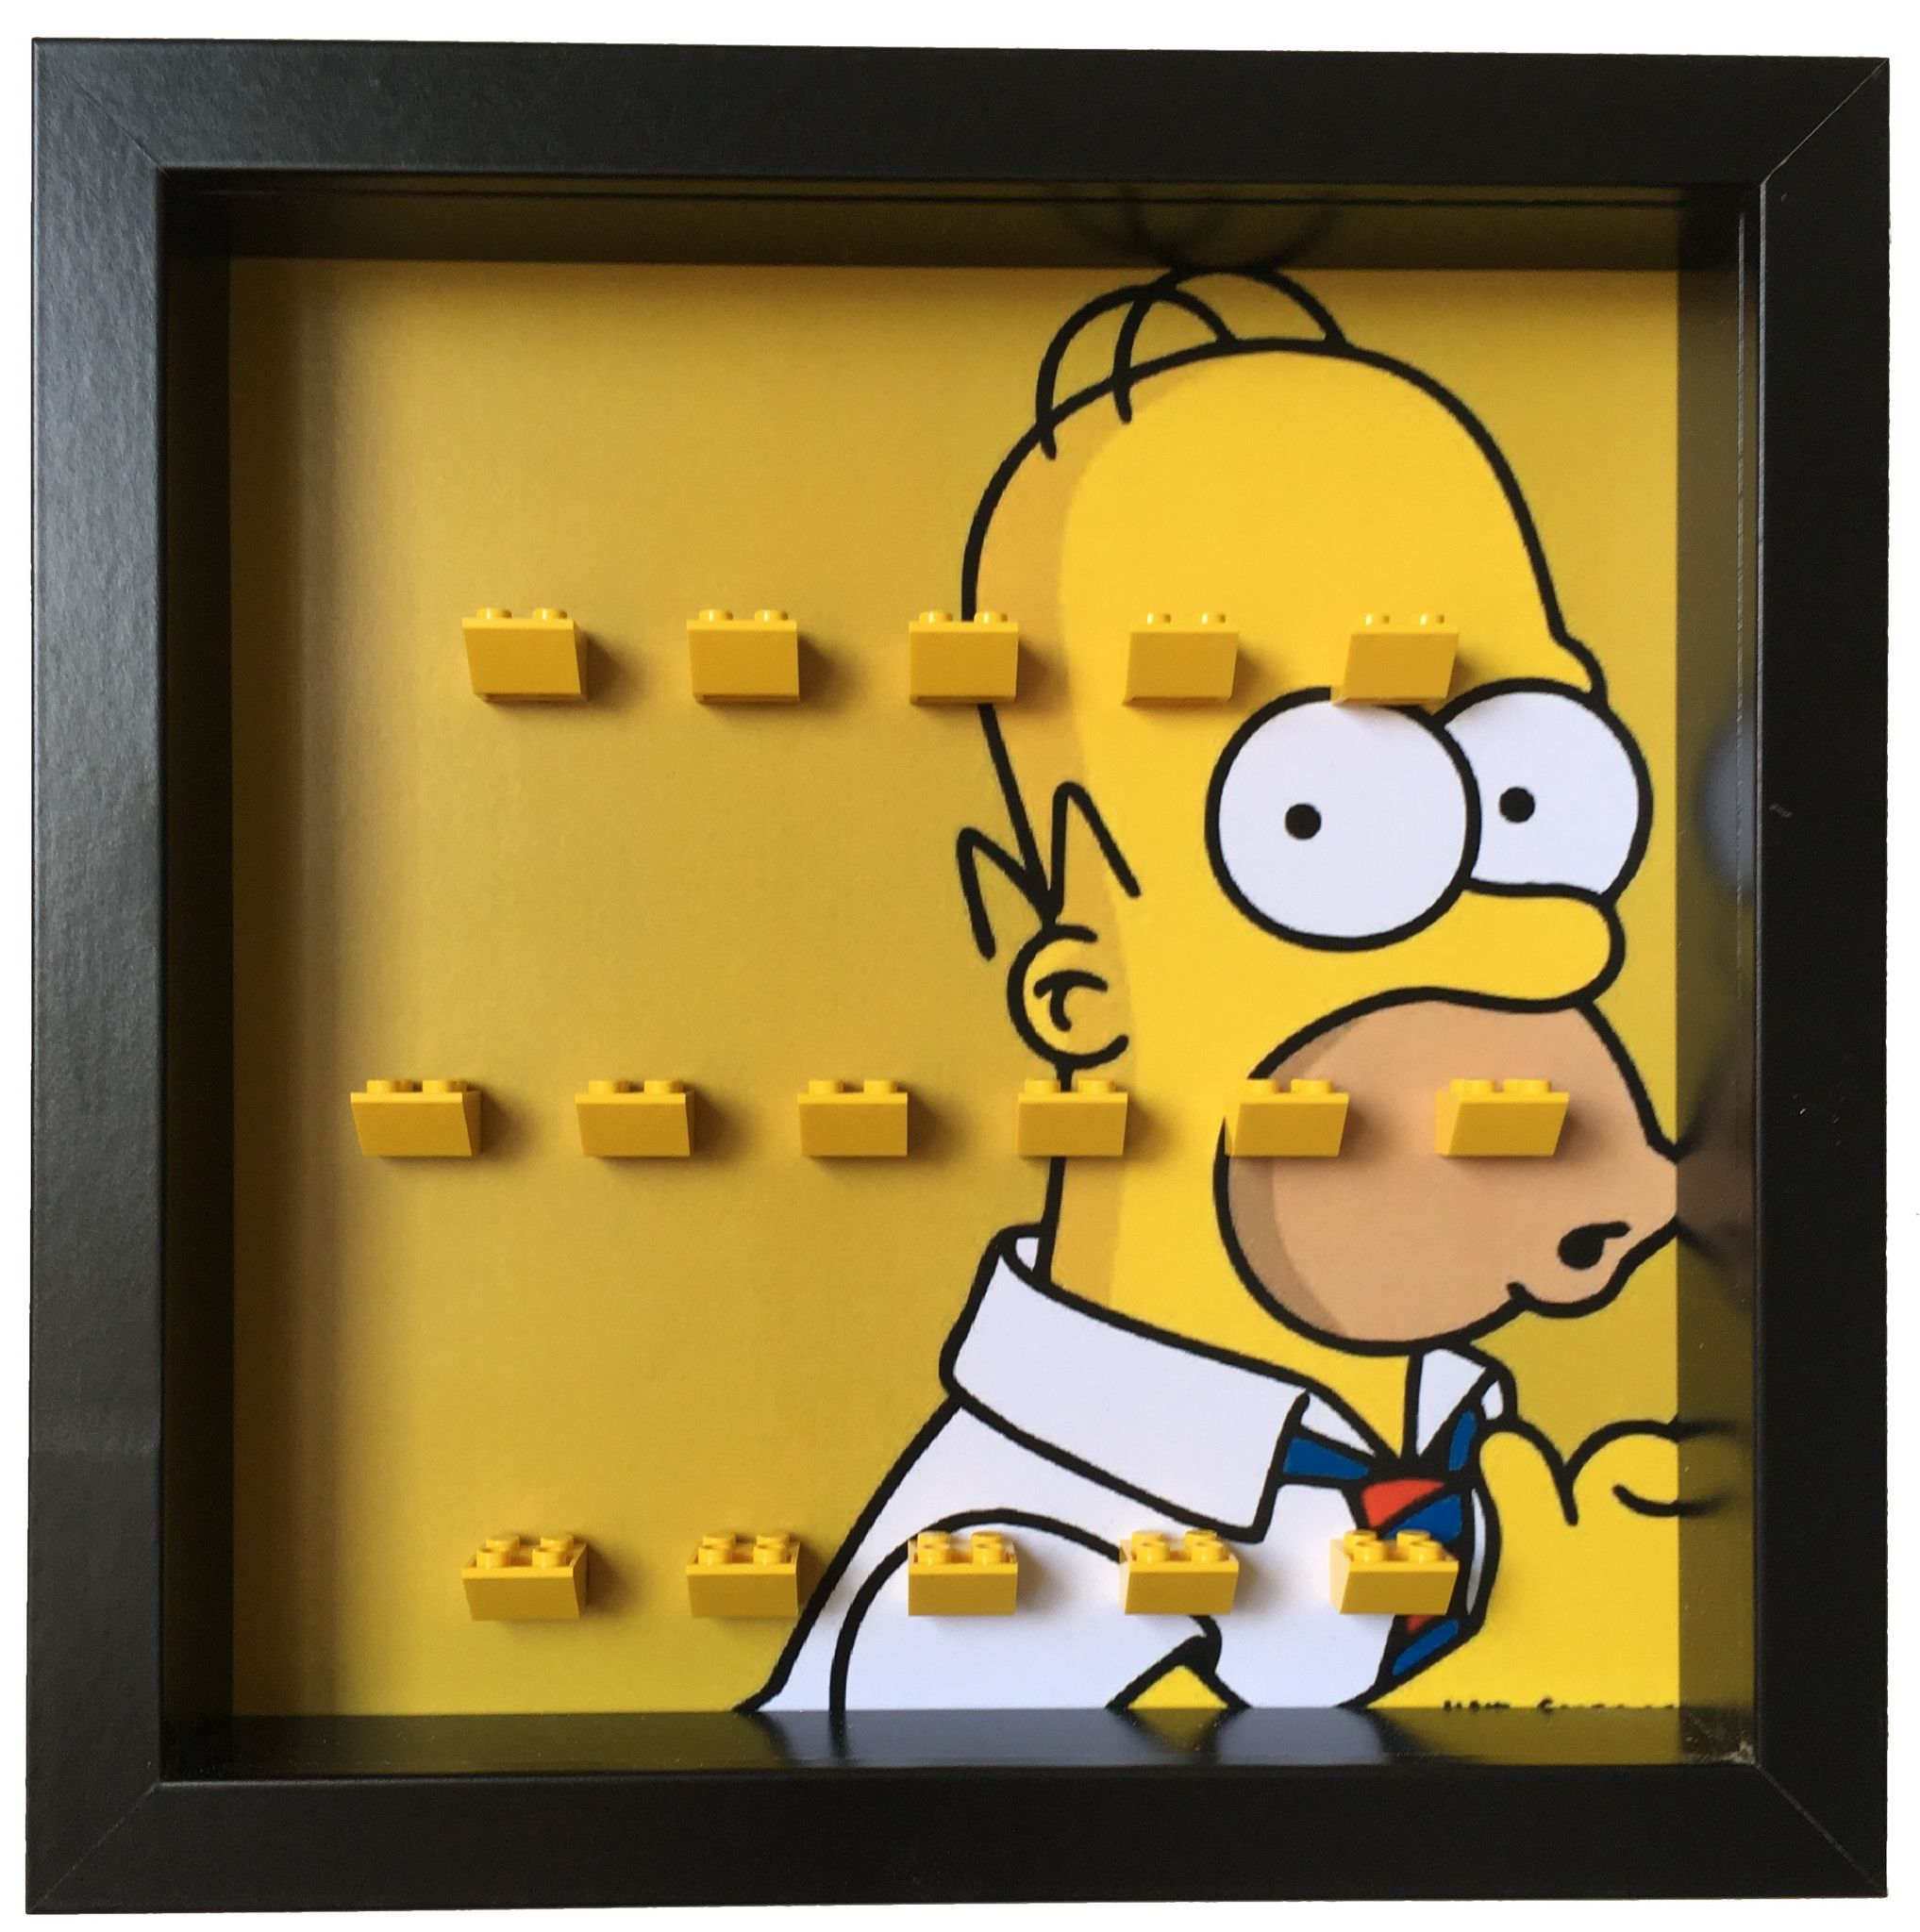 Lego Homer Simpsons minifigures frame | Homer simpson, Lego and ...